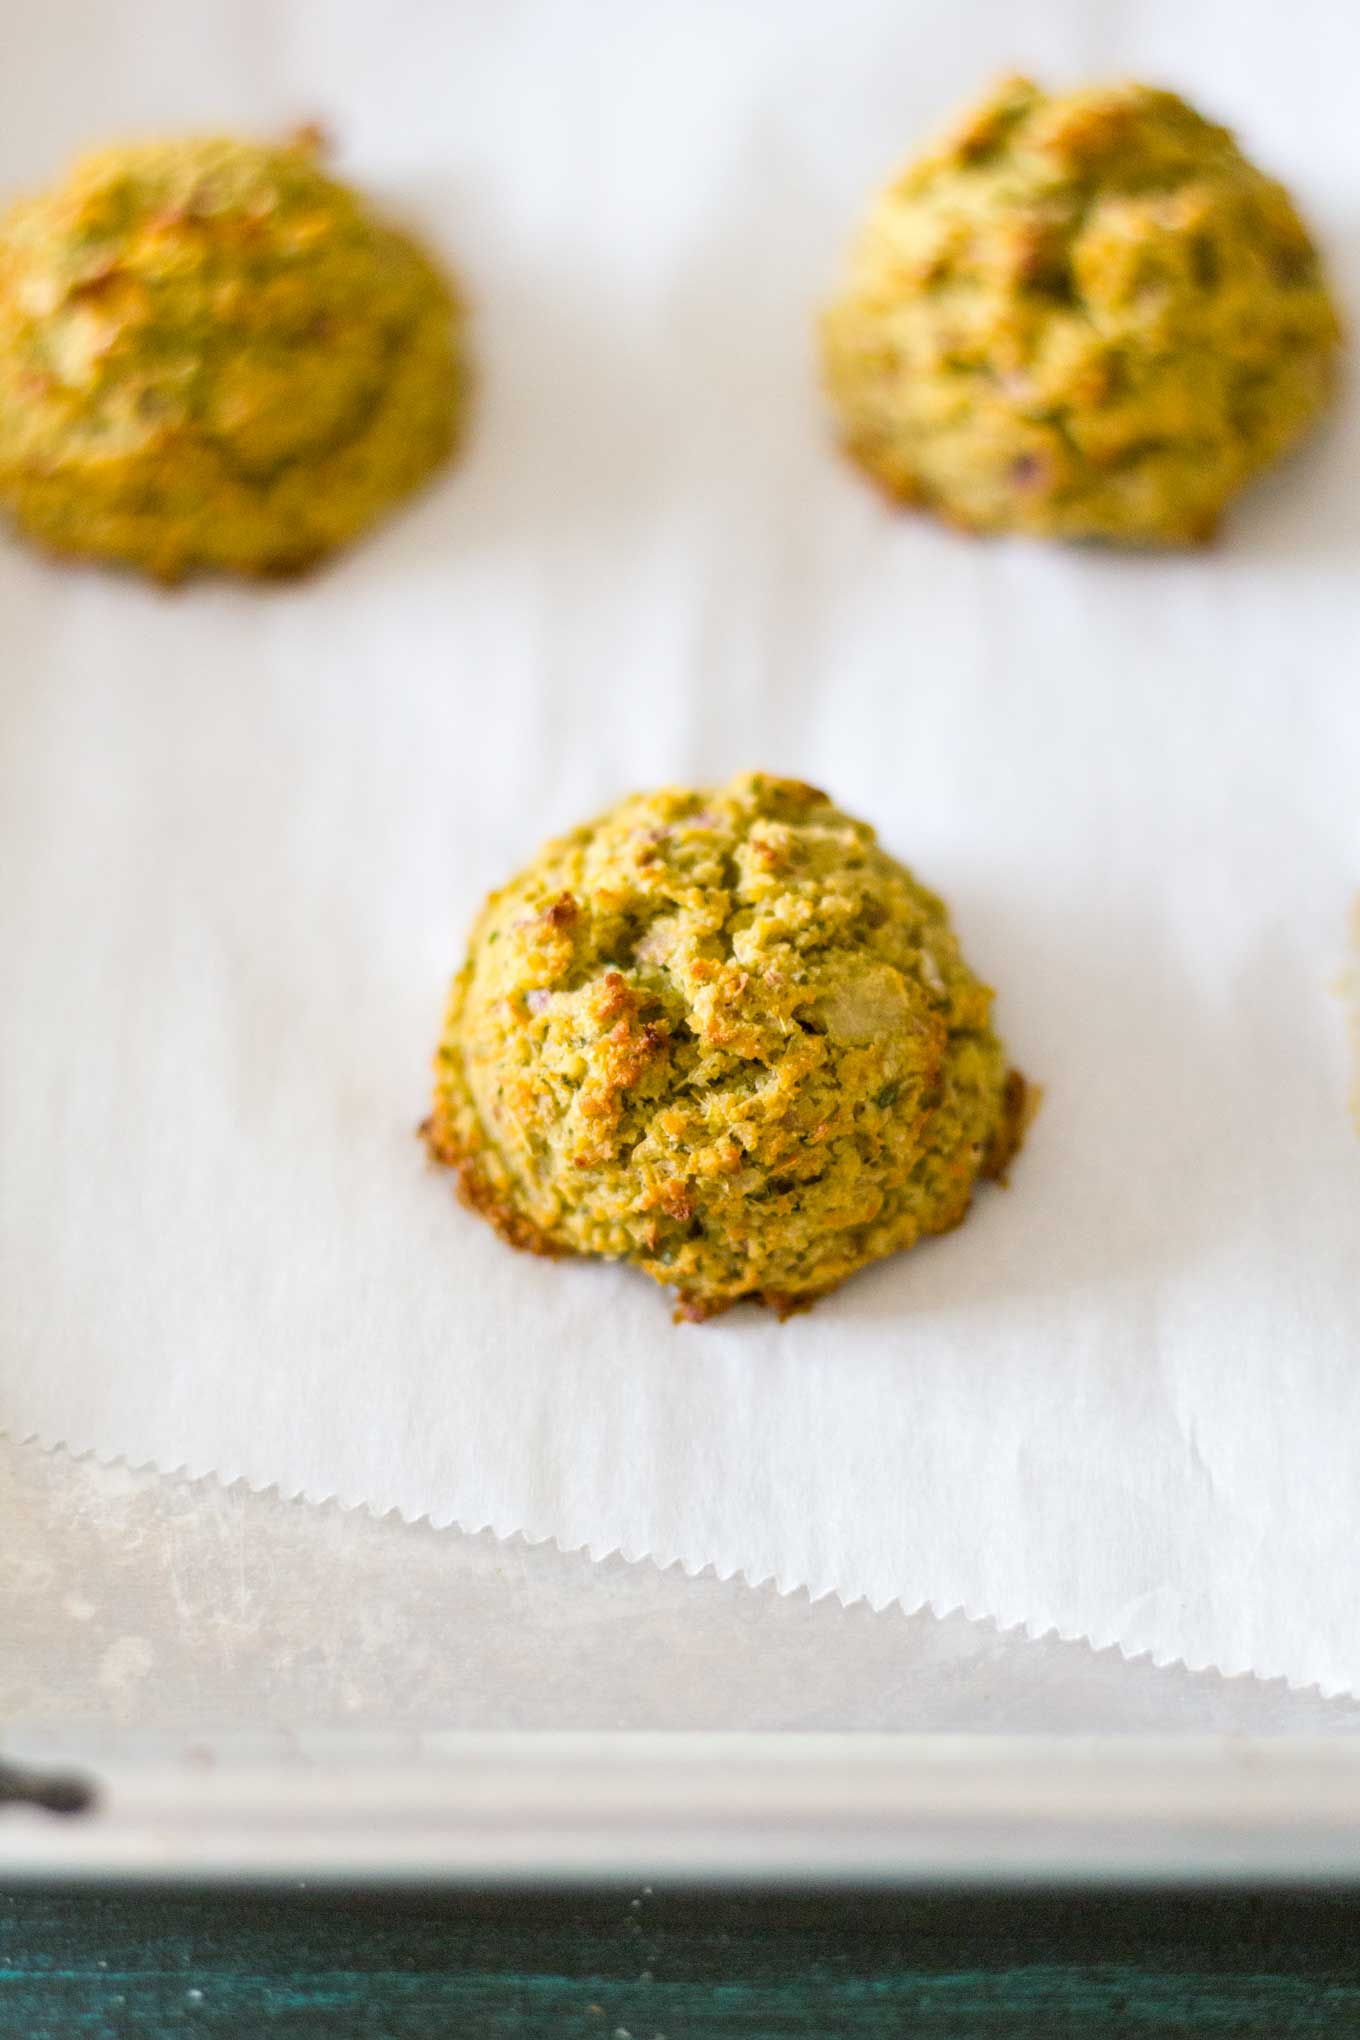 Oven-Baked Falafel on baking sheet after baking | Plant-based | Oil-free | Vegan | Gluten-free | https://passtheplants.com/